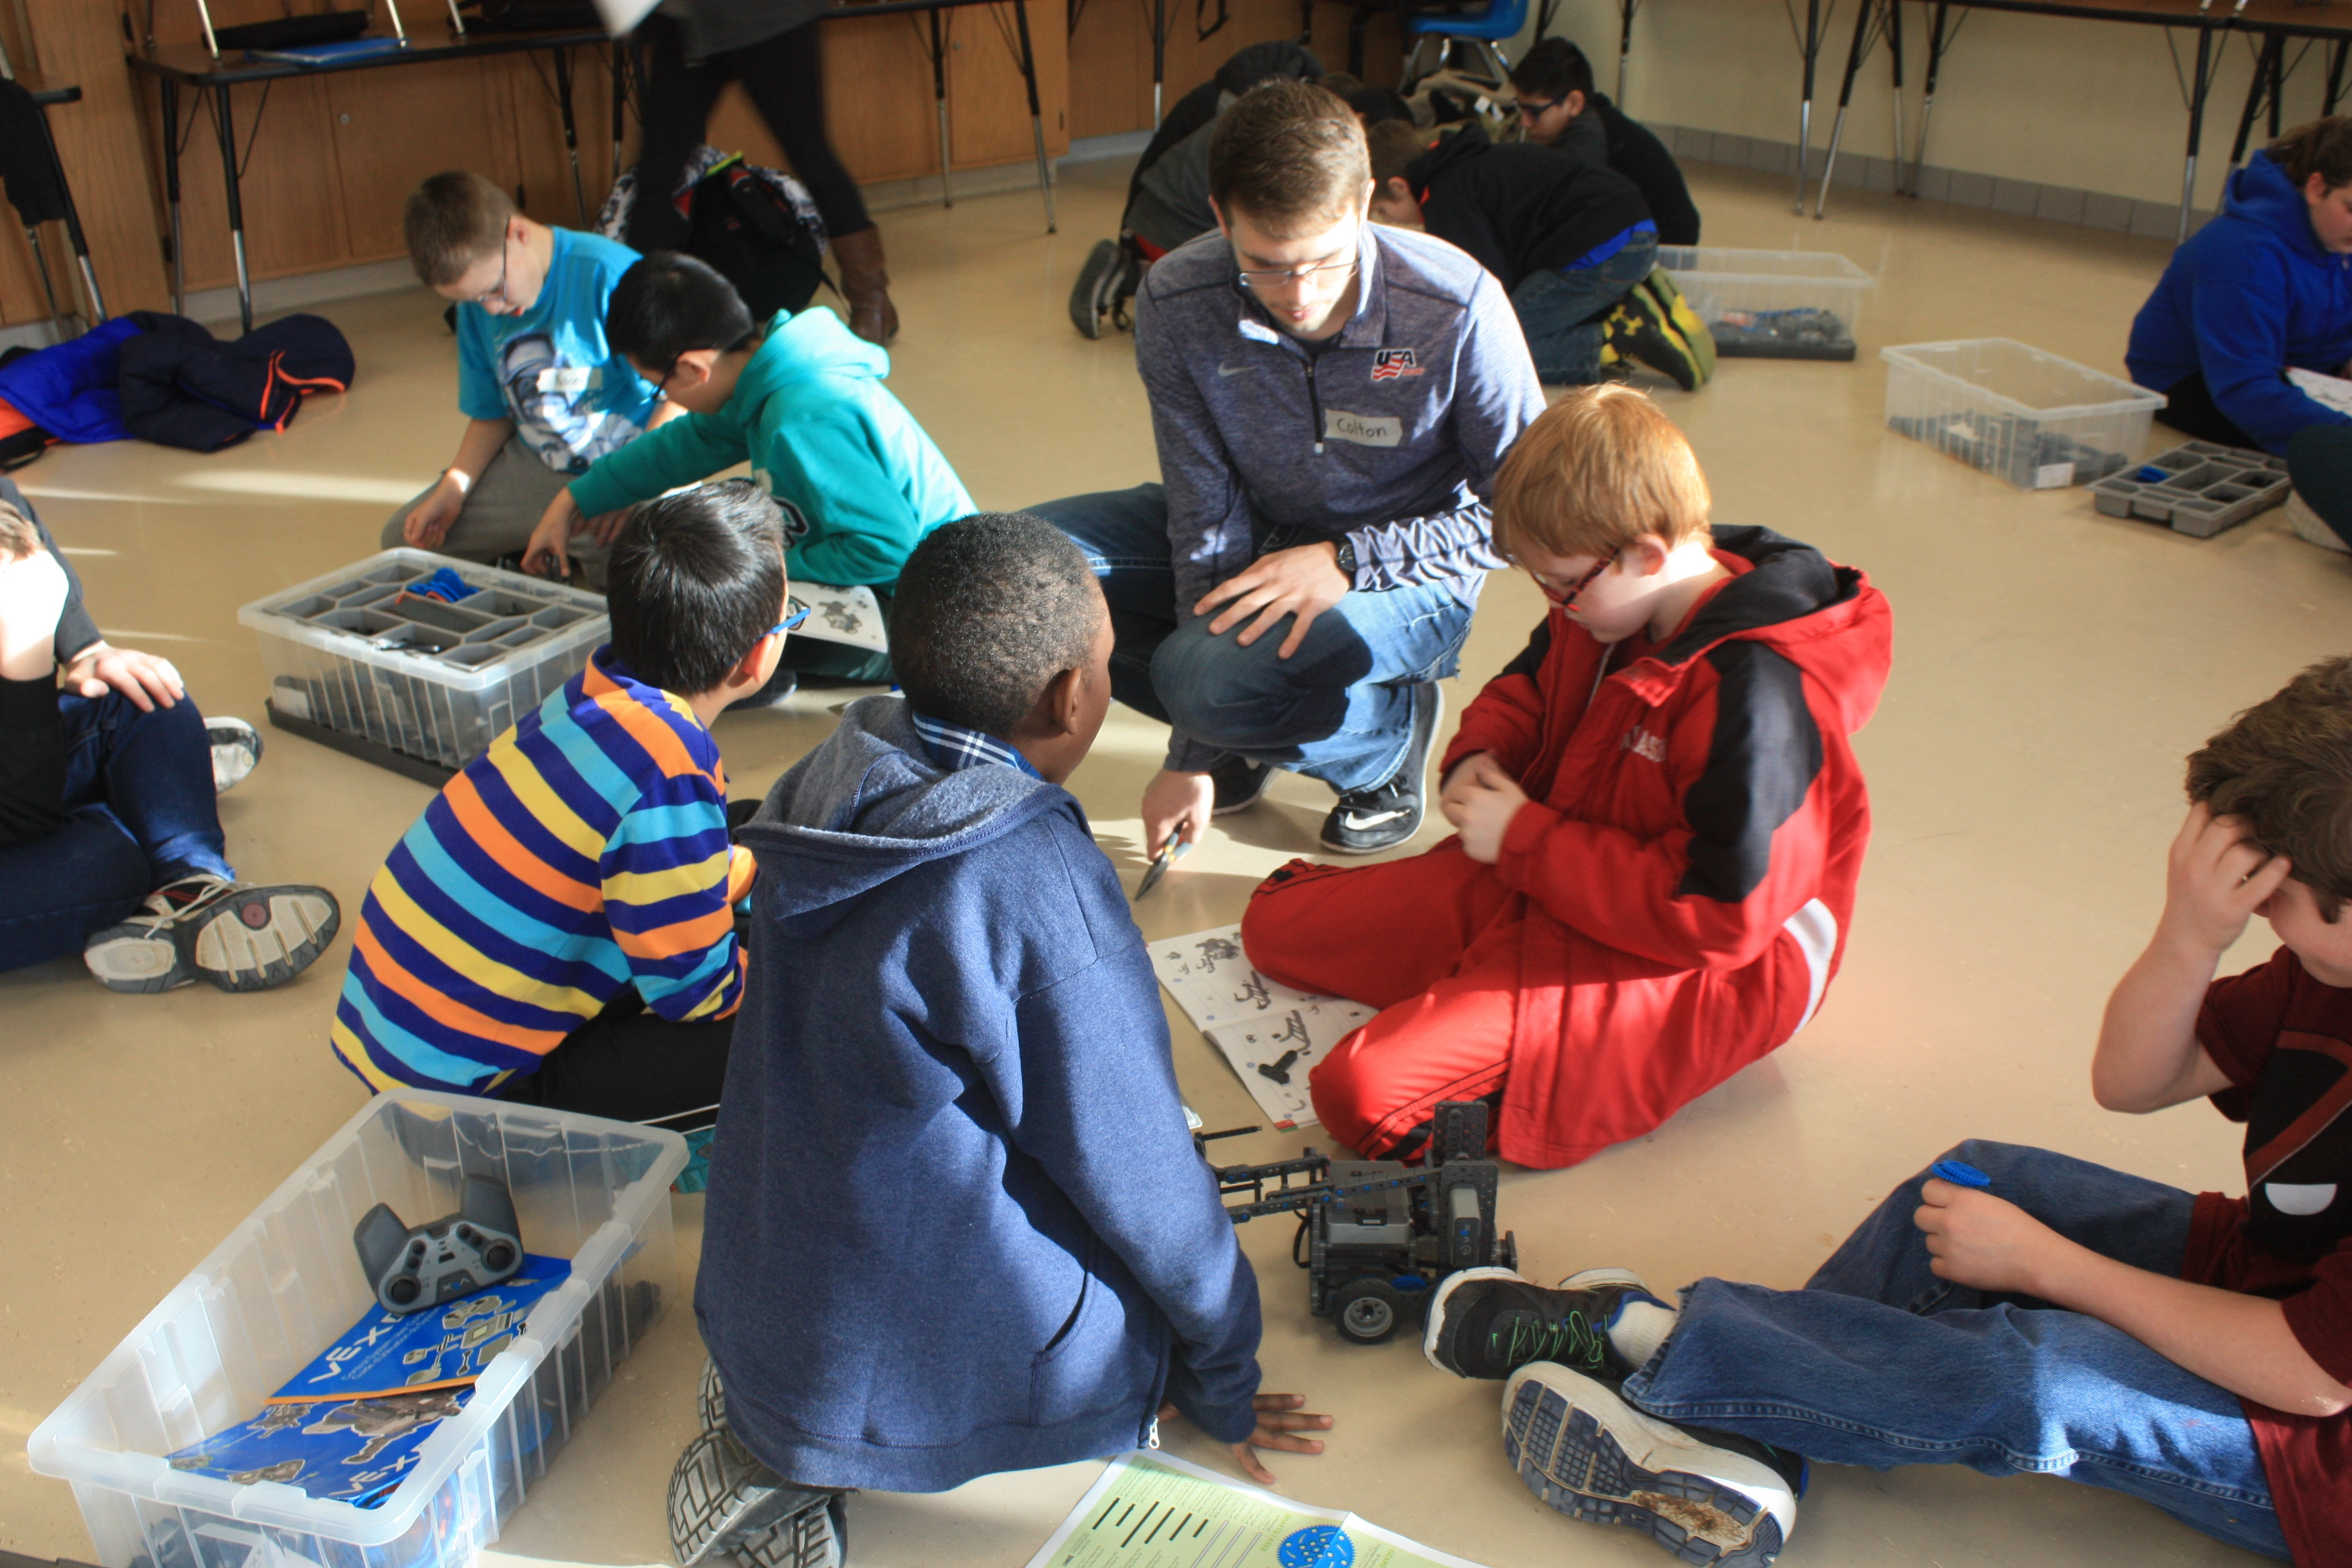 CSE Ambassador Colton Harper helps students at Culler Middle School put together robots in an after-school club.